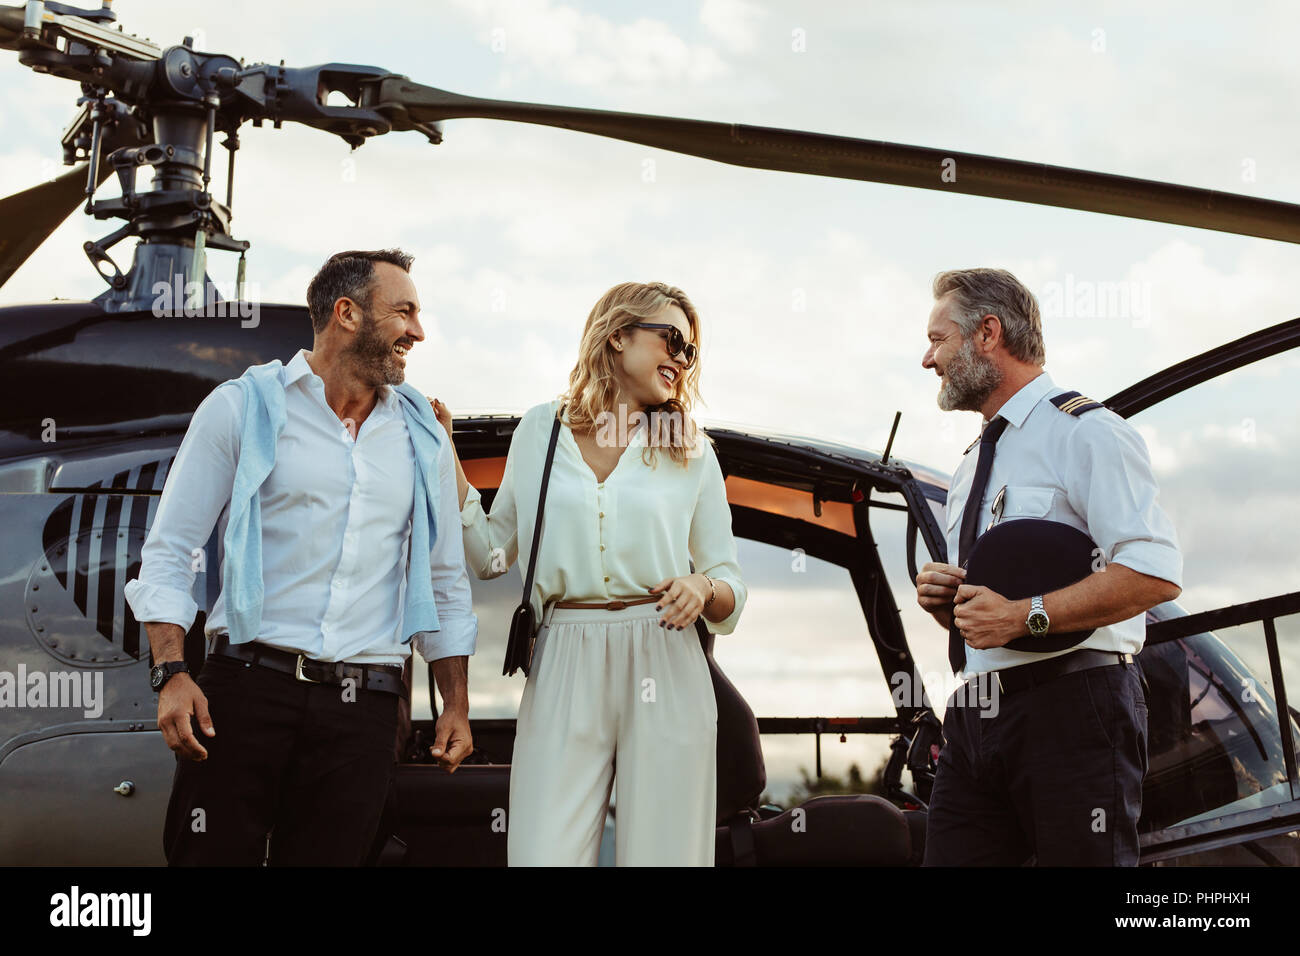 Smiling couple alighted from a private helicopter talking to the pilot. Couple getting off a private aircraft with mature pilot. - Stock Image